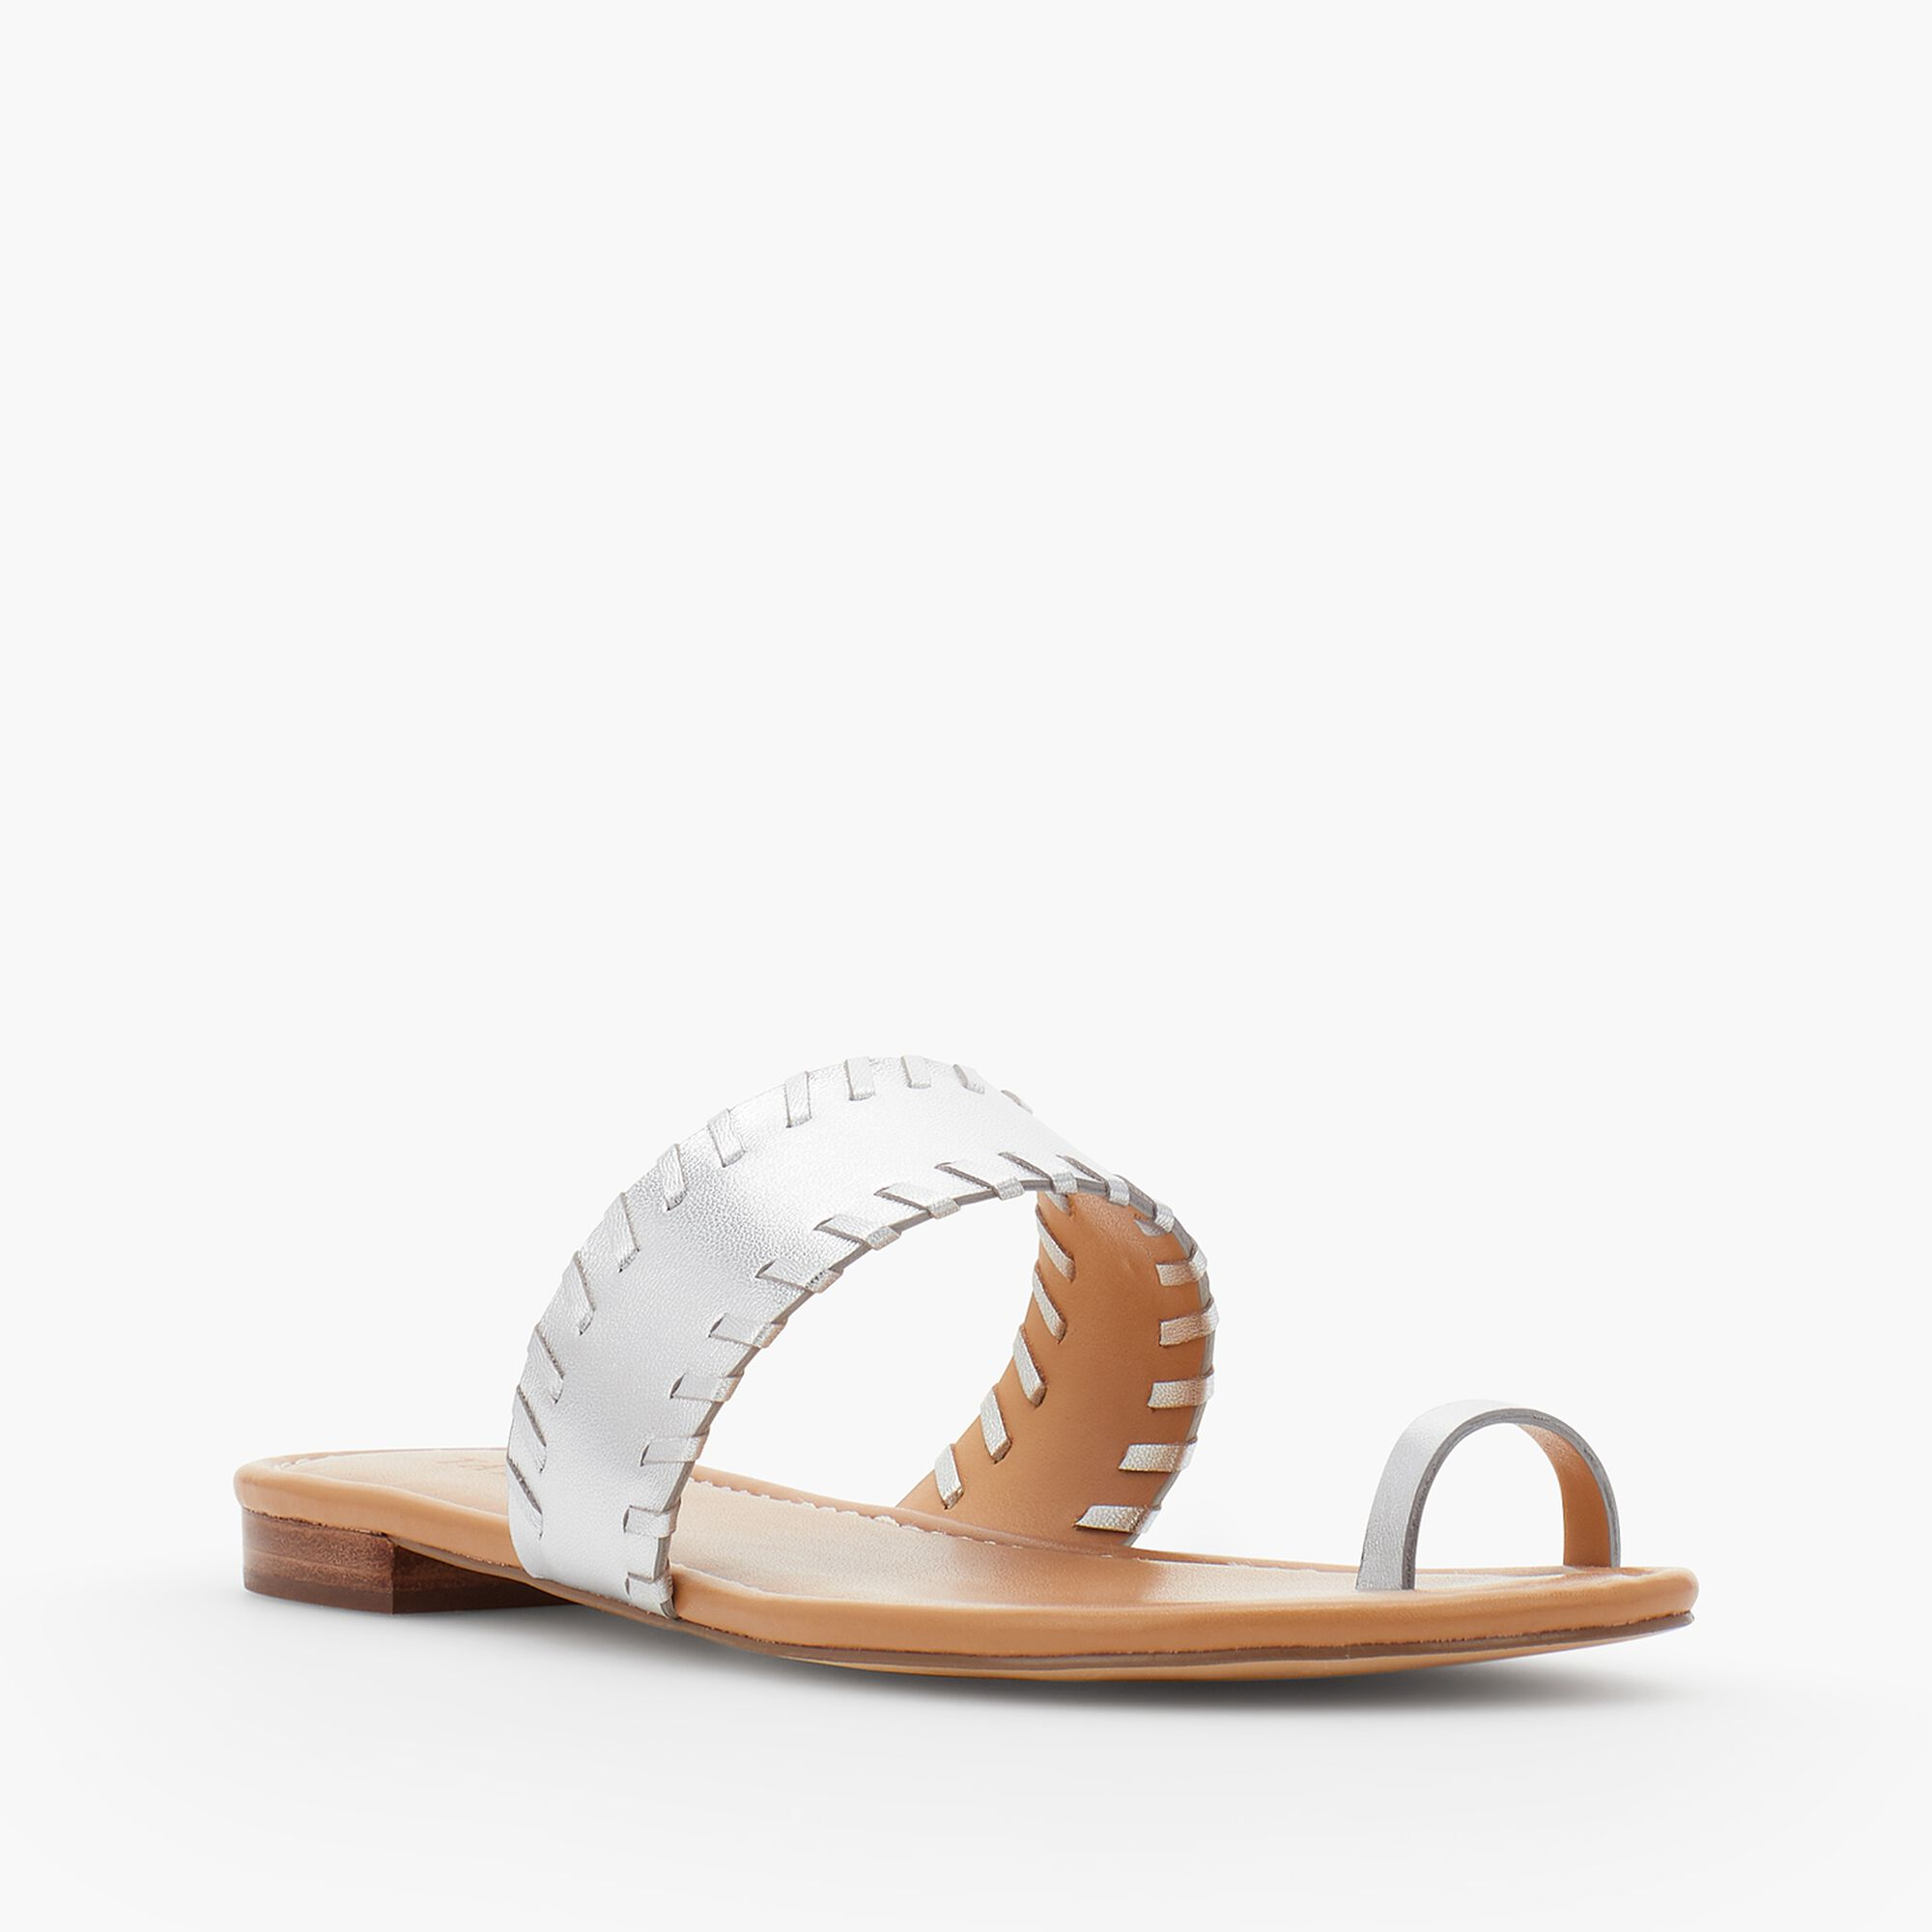 42ceb46cb Gia Toe-Ring Sandals-Metallic Leather Opens a New Window.